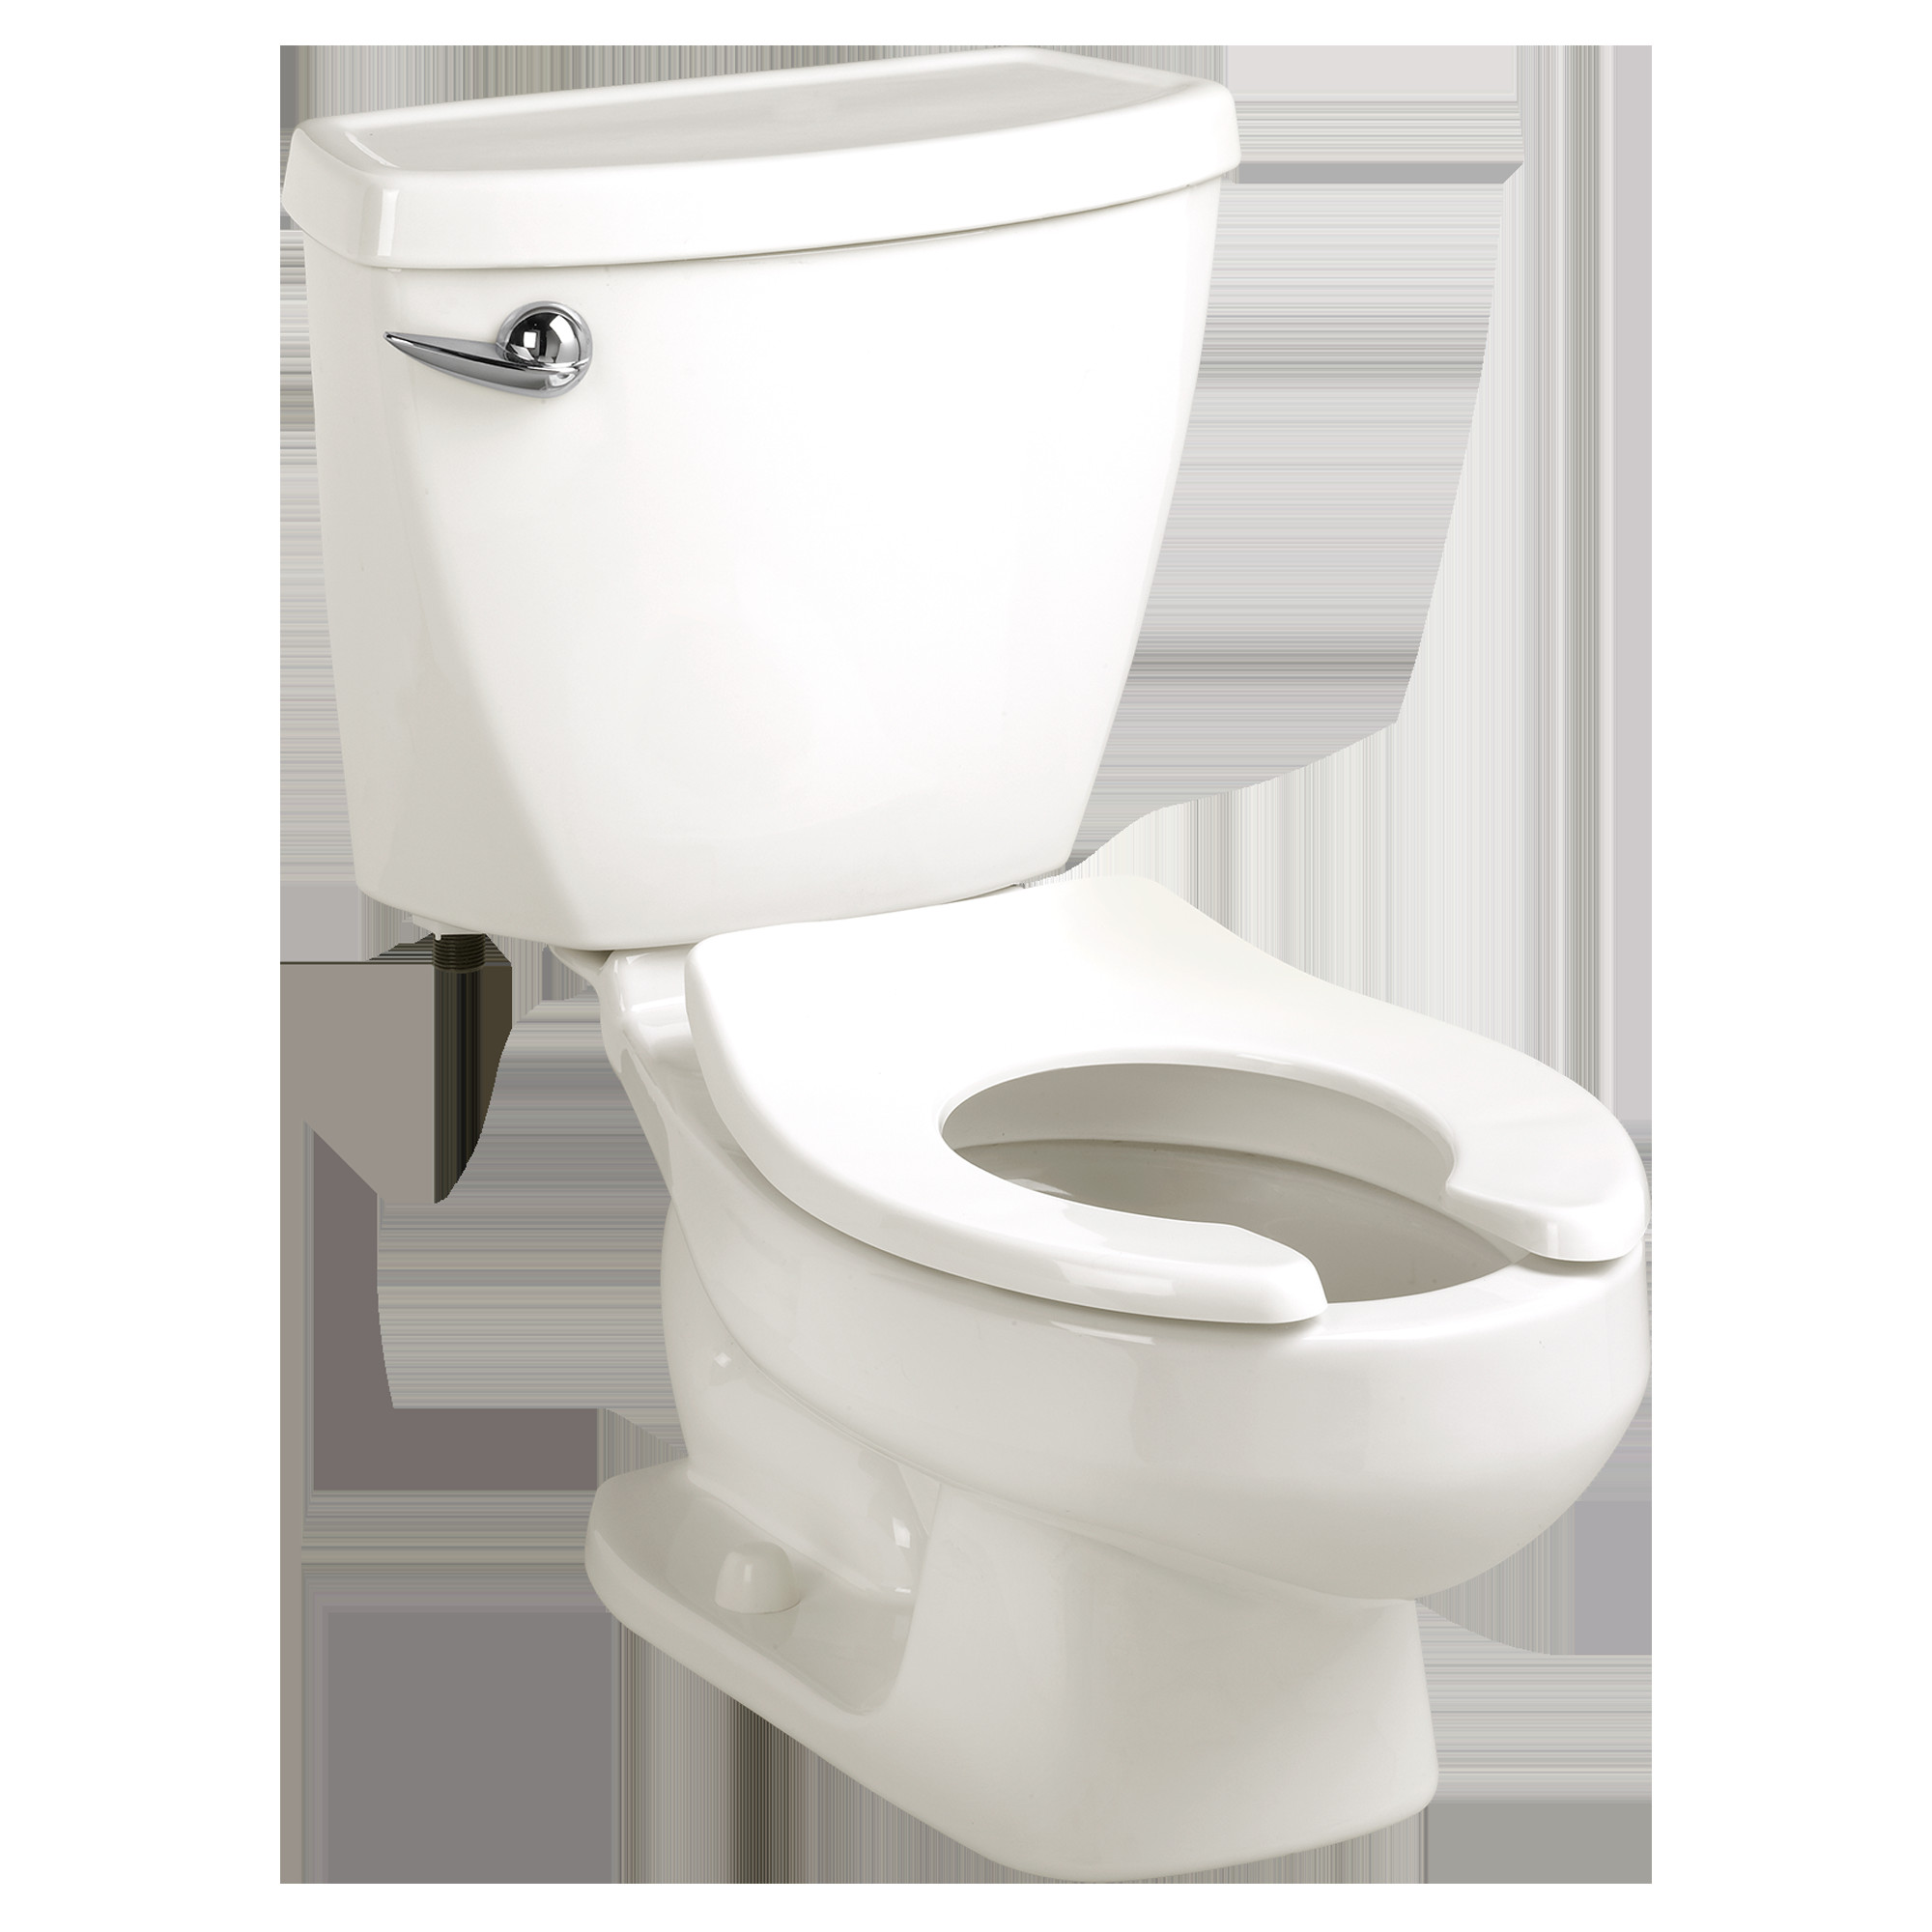 2315228020 baby devoro flowise 10 inch high round front toilet png